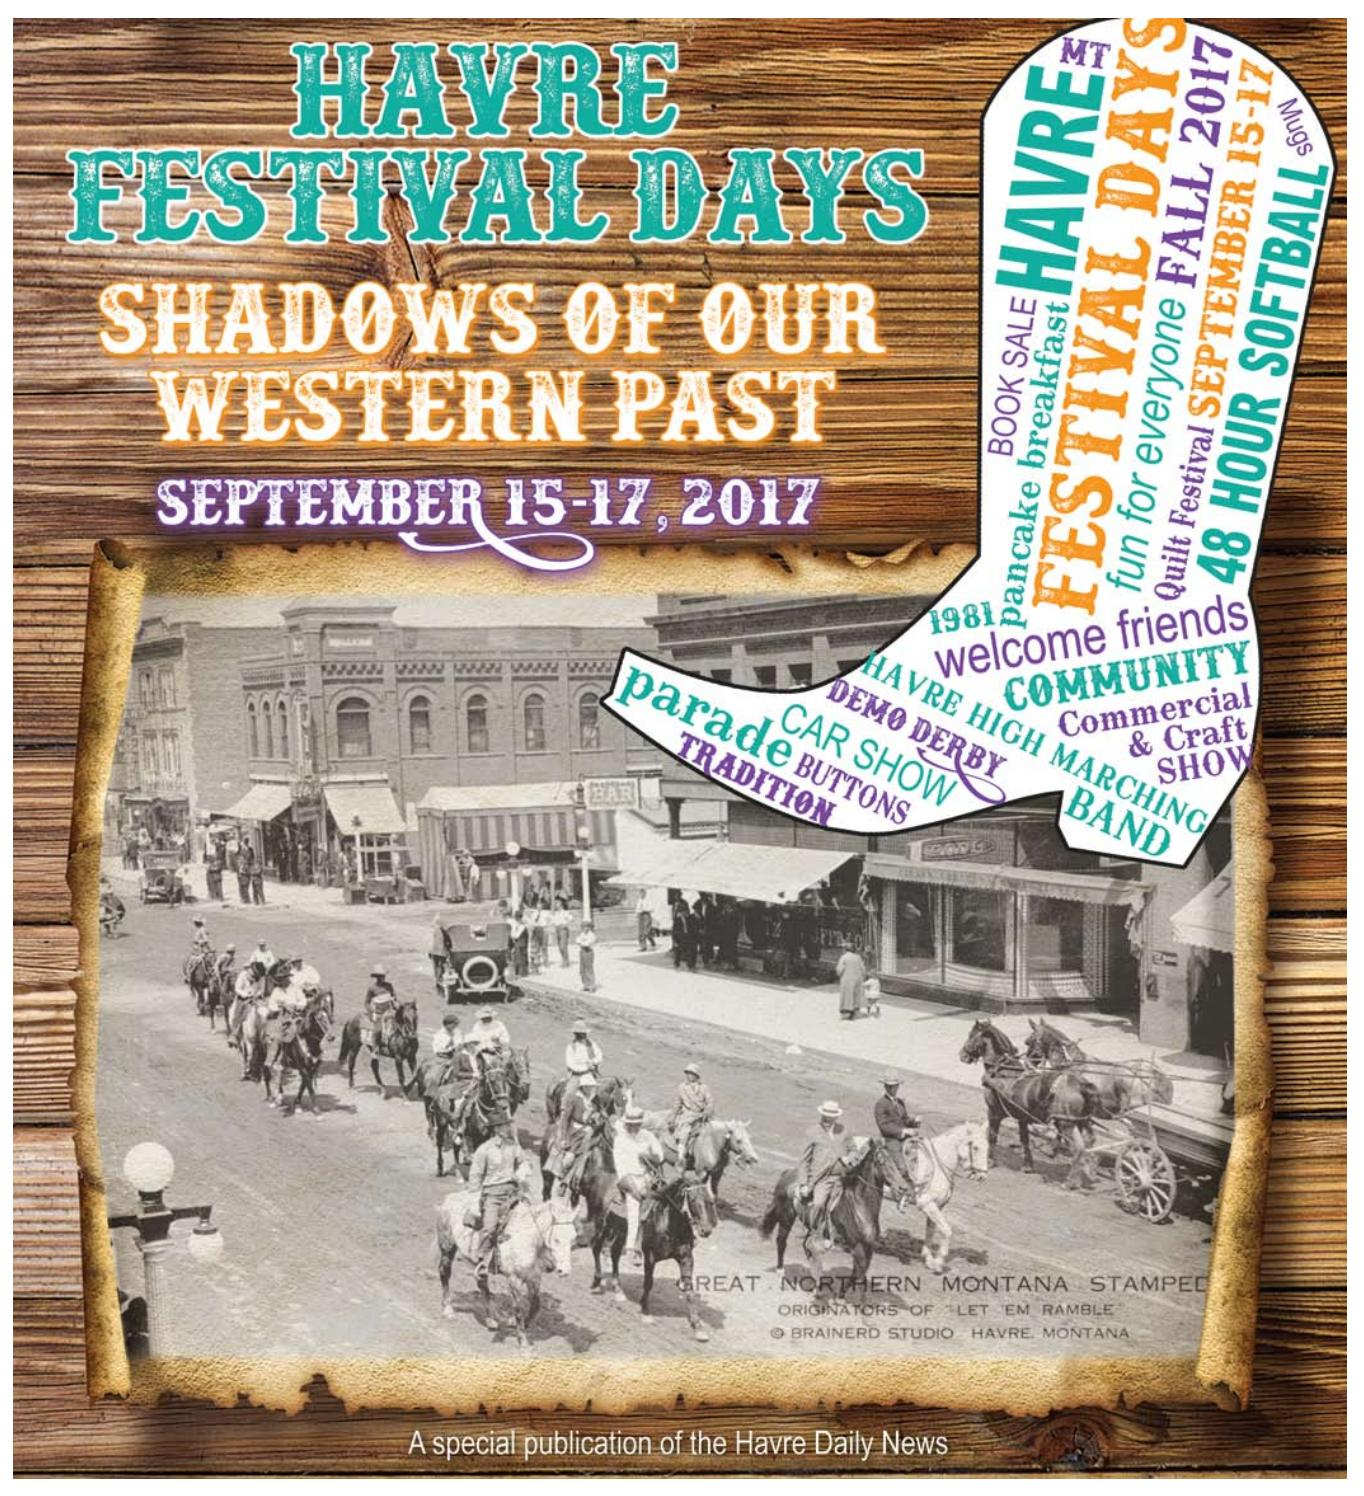 Festival Days 2017 By Havre Daily News   Issuu